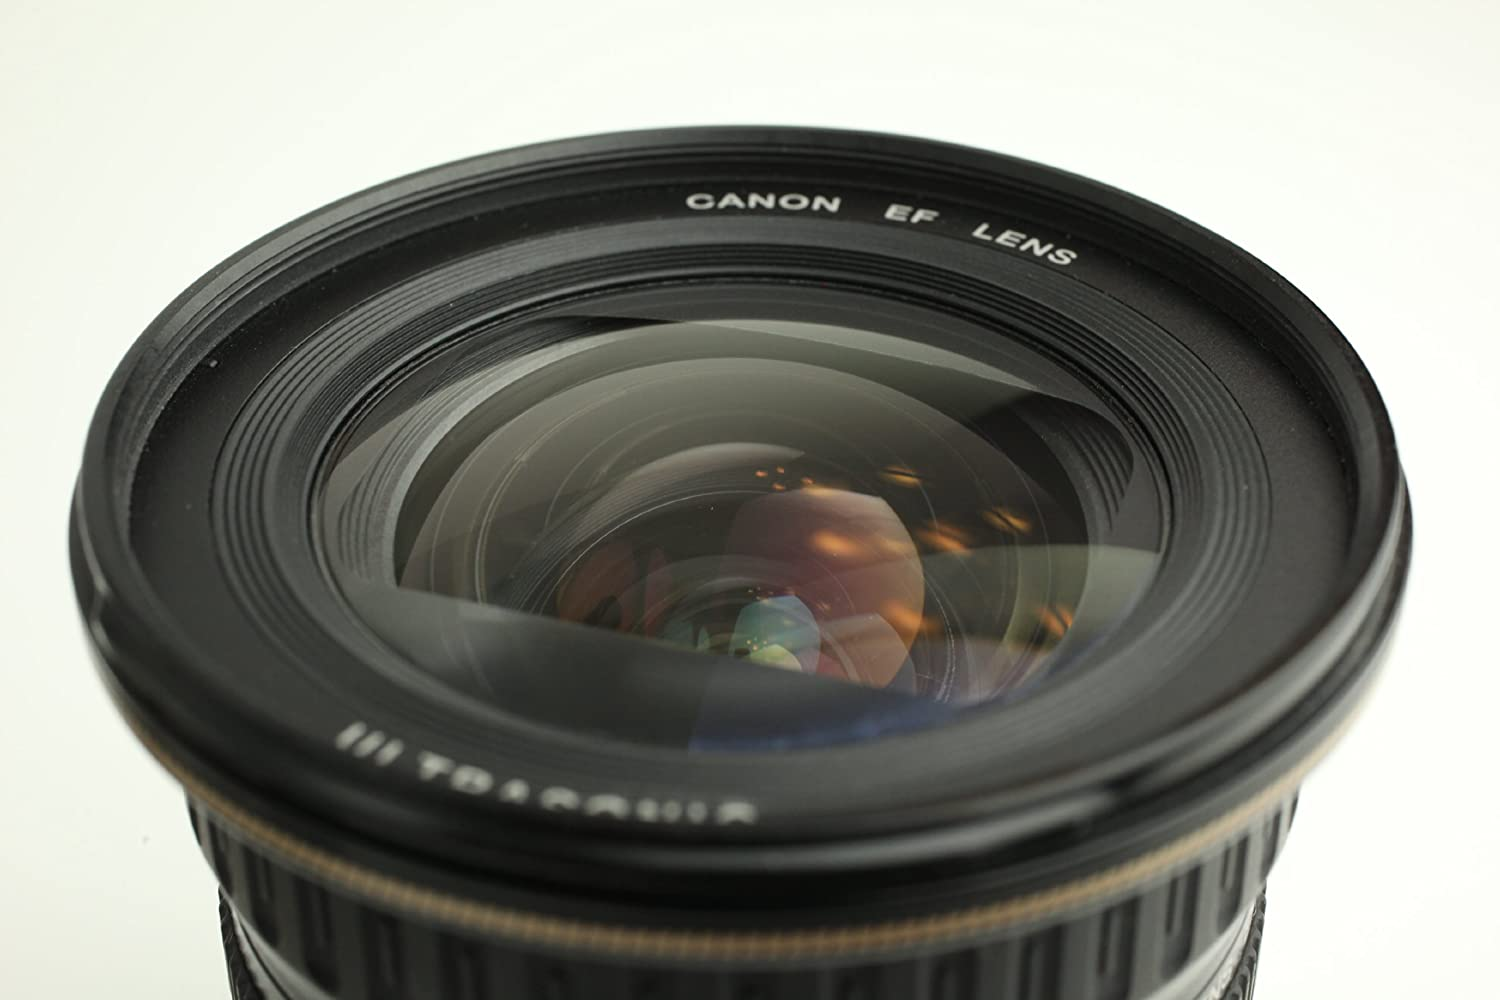 Canon EF 20-35mm f/3.5-4.5 USM Ultra Wide